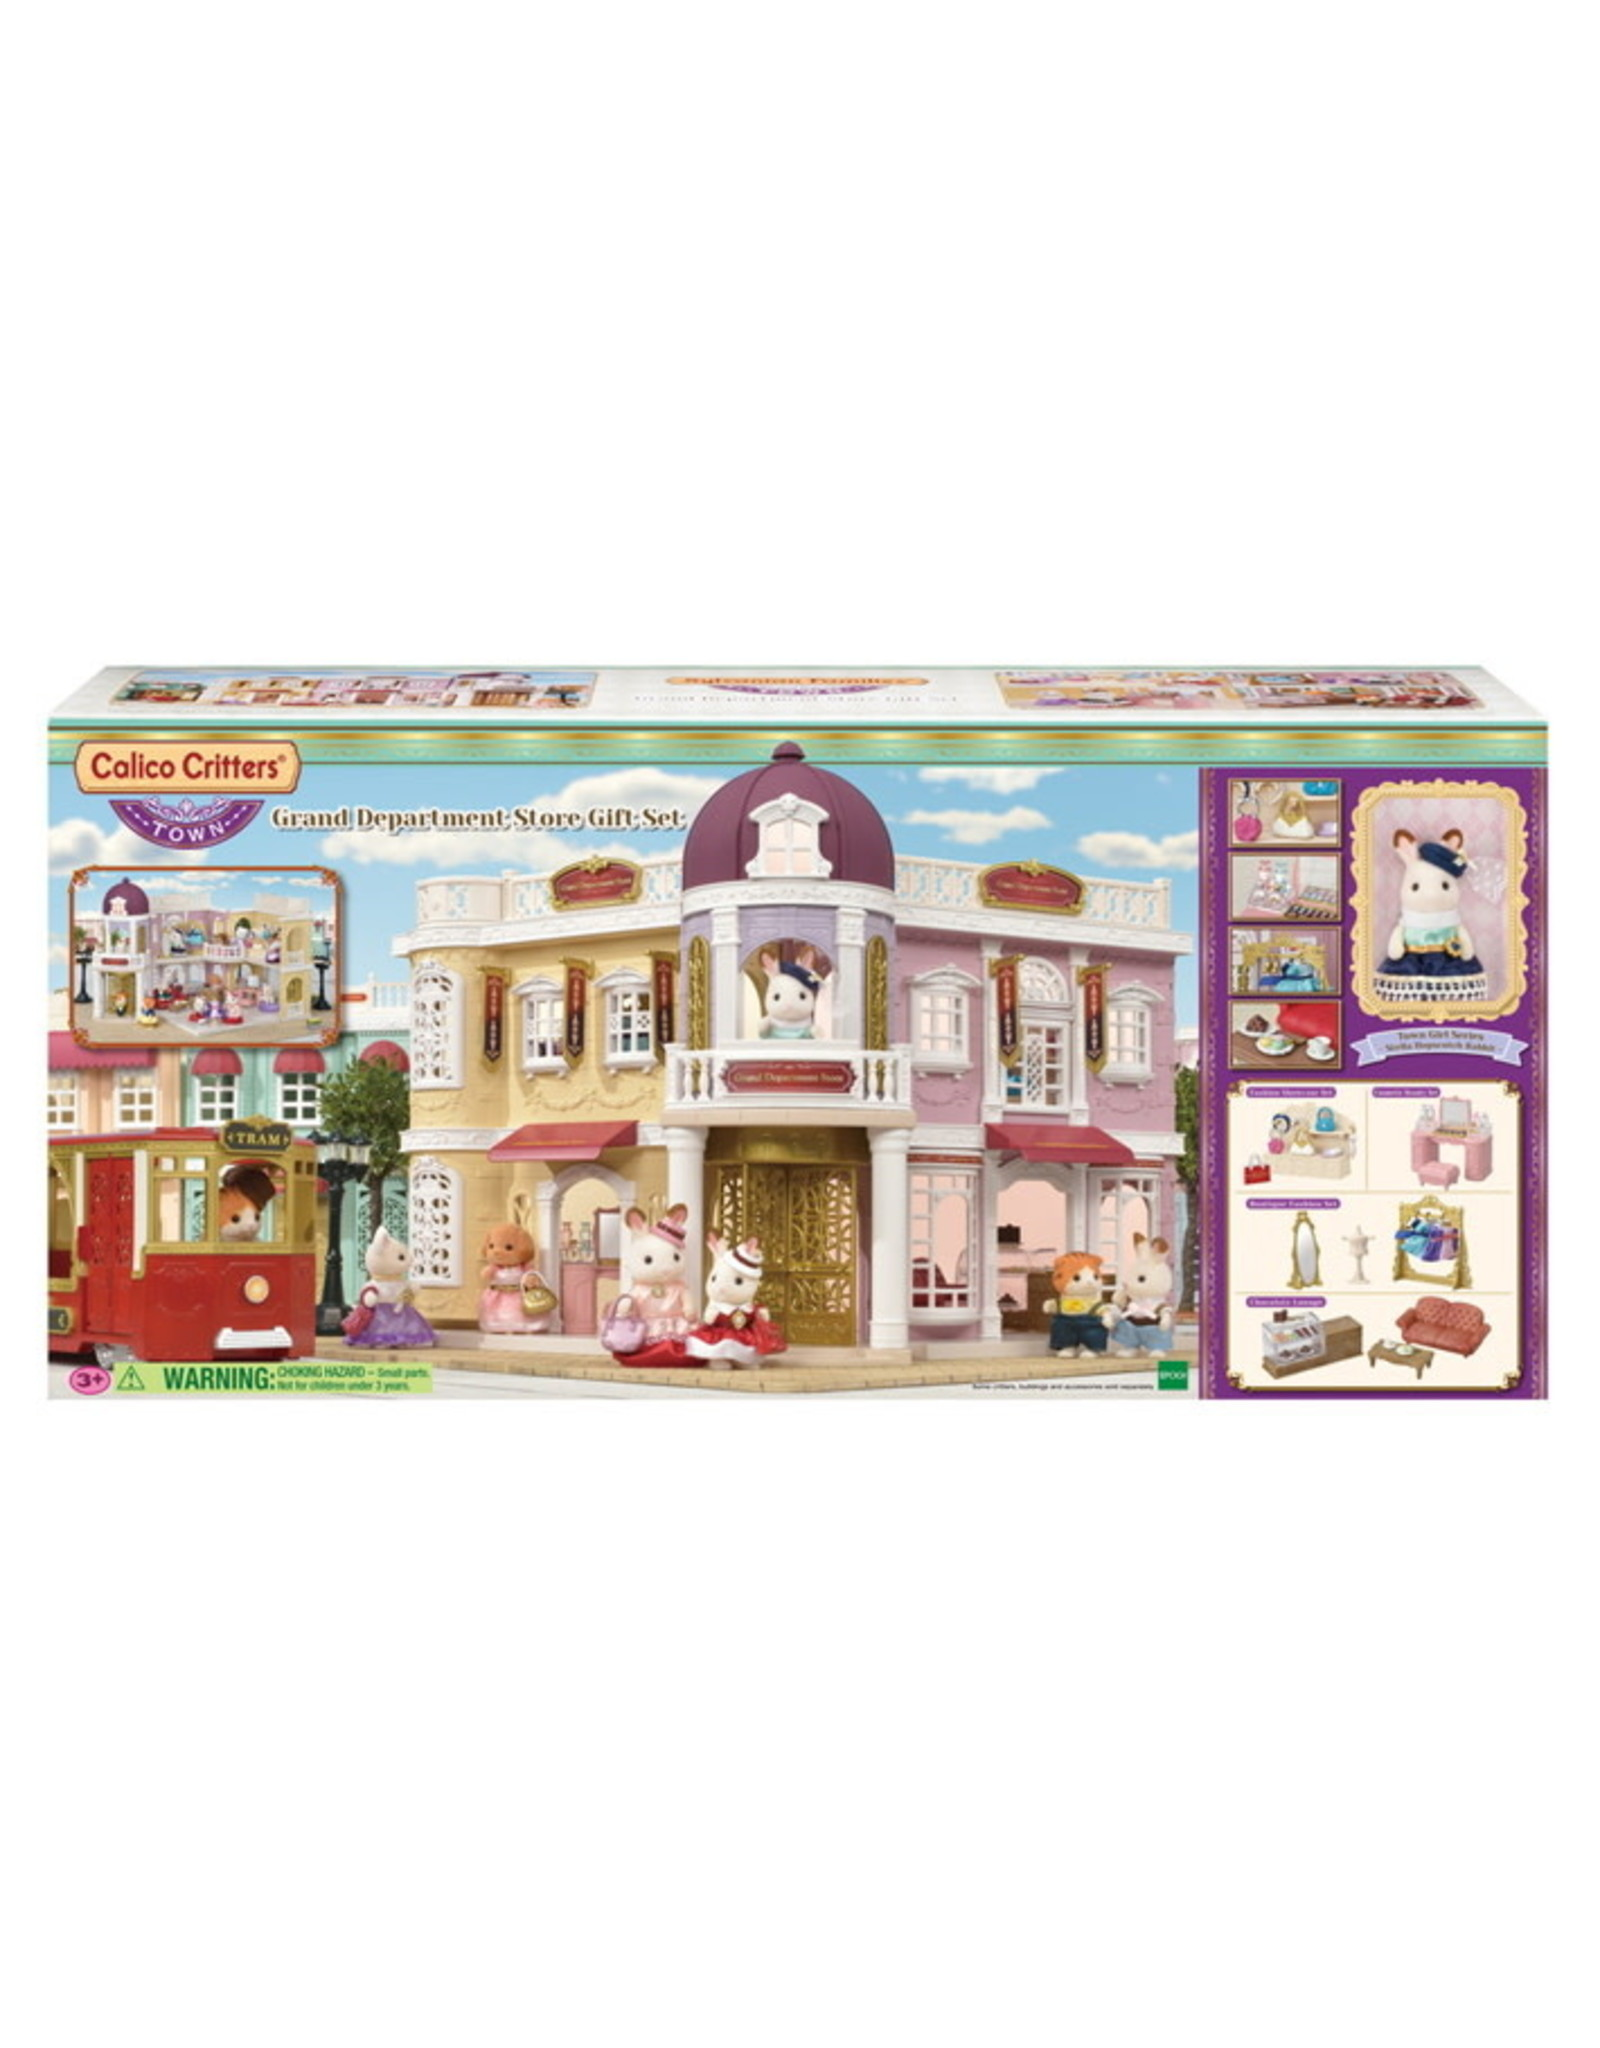 Calico Critters Grand Department Store Gift Set Calico Critters